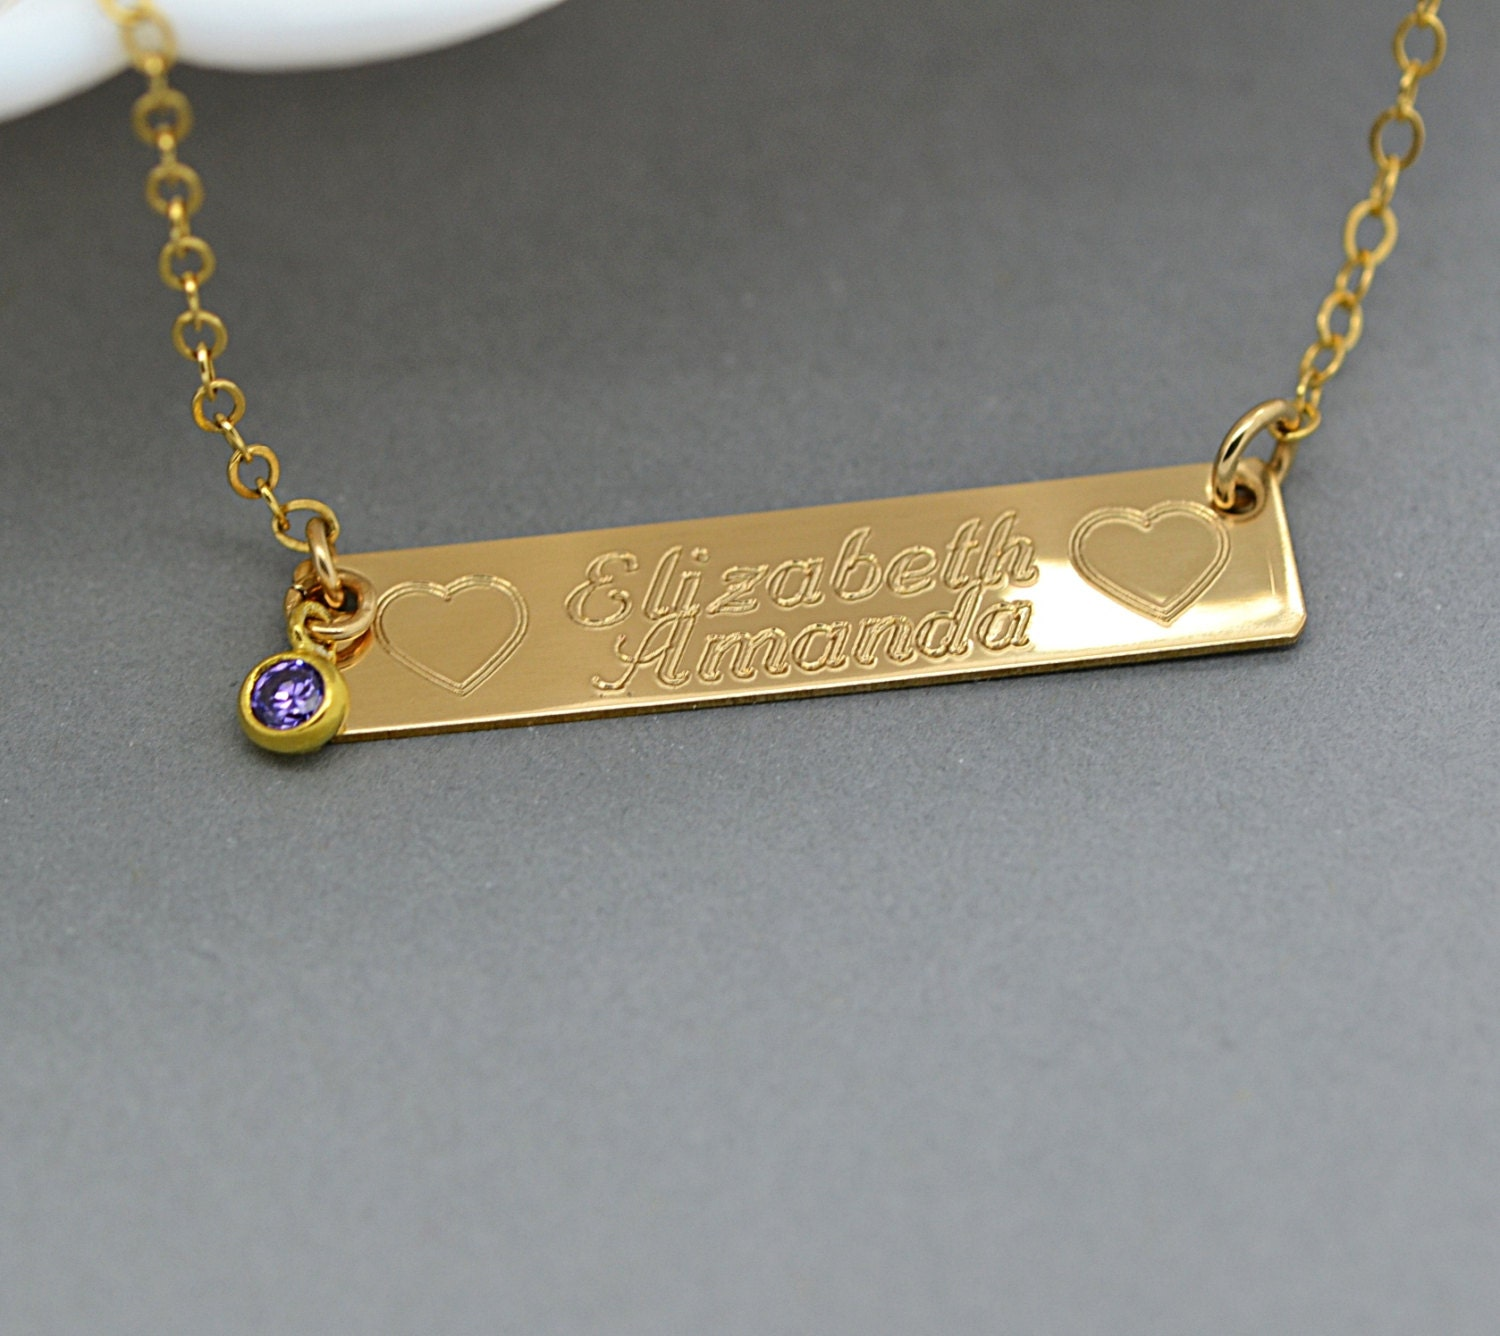 bar name necklace gold bar necklace personalize bar